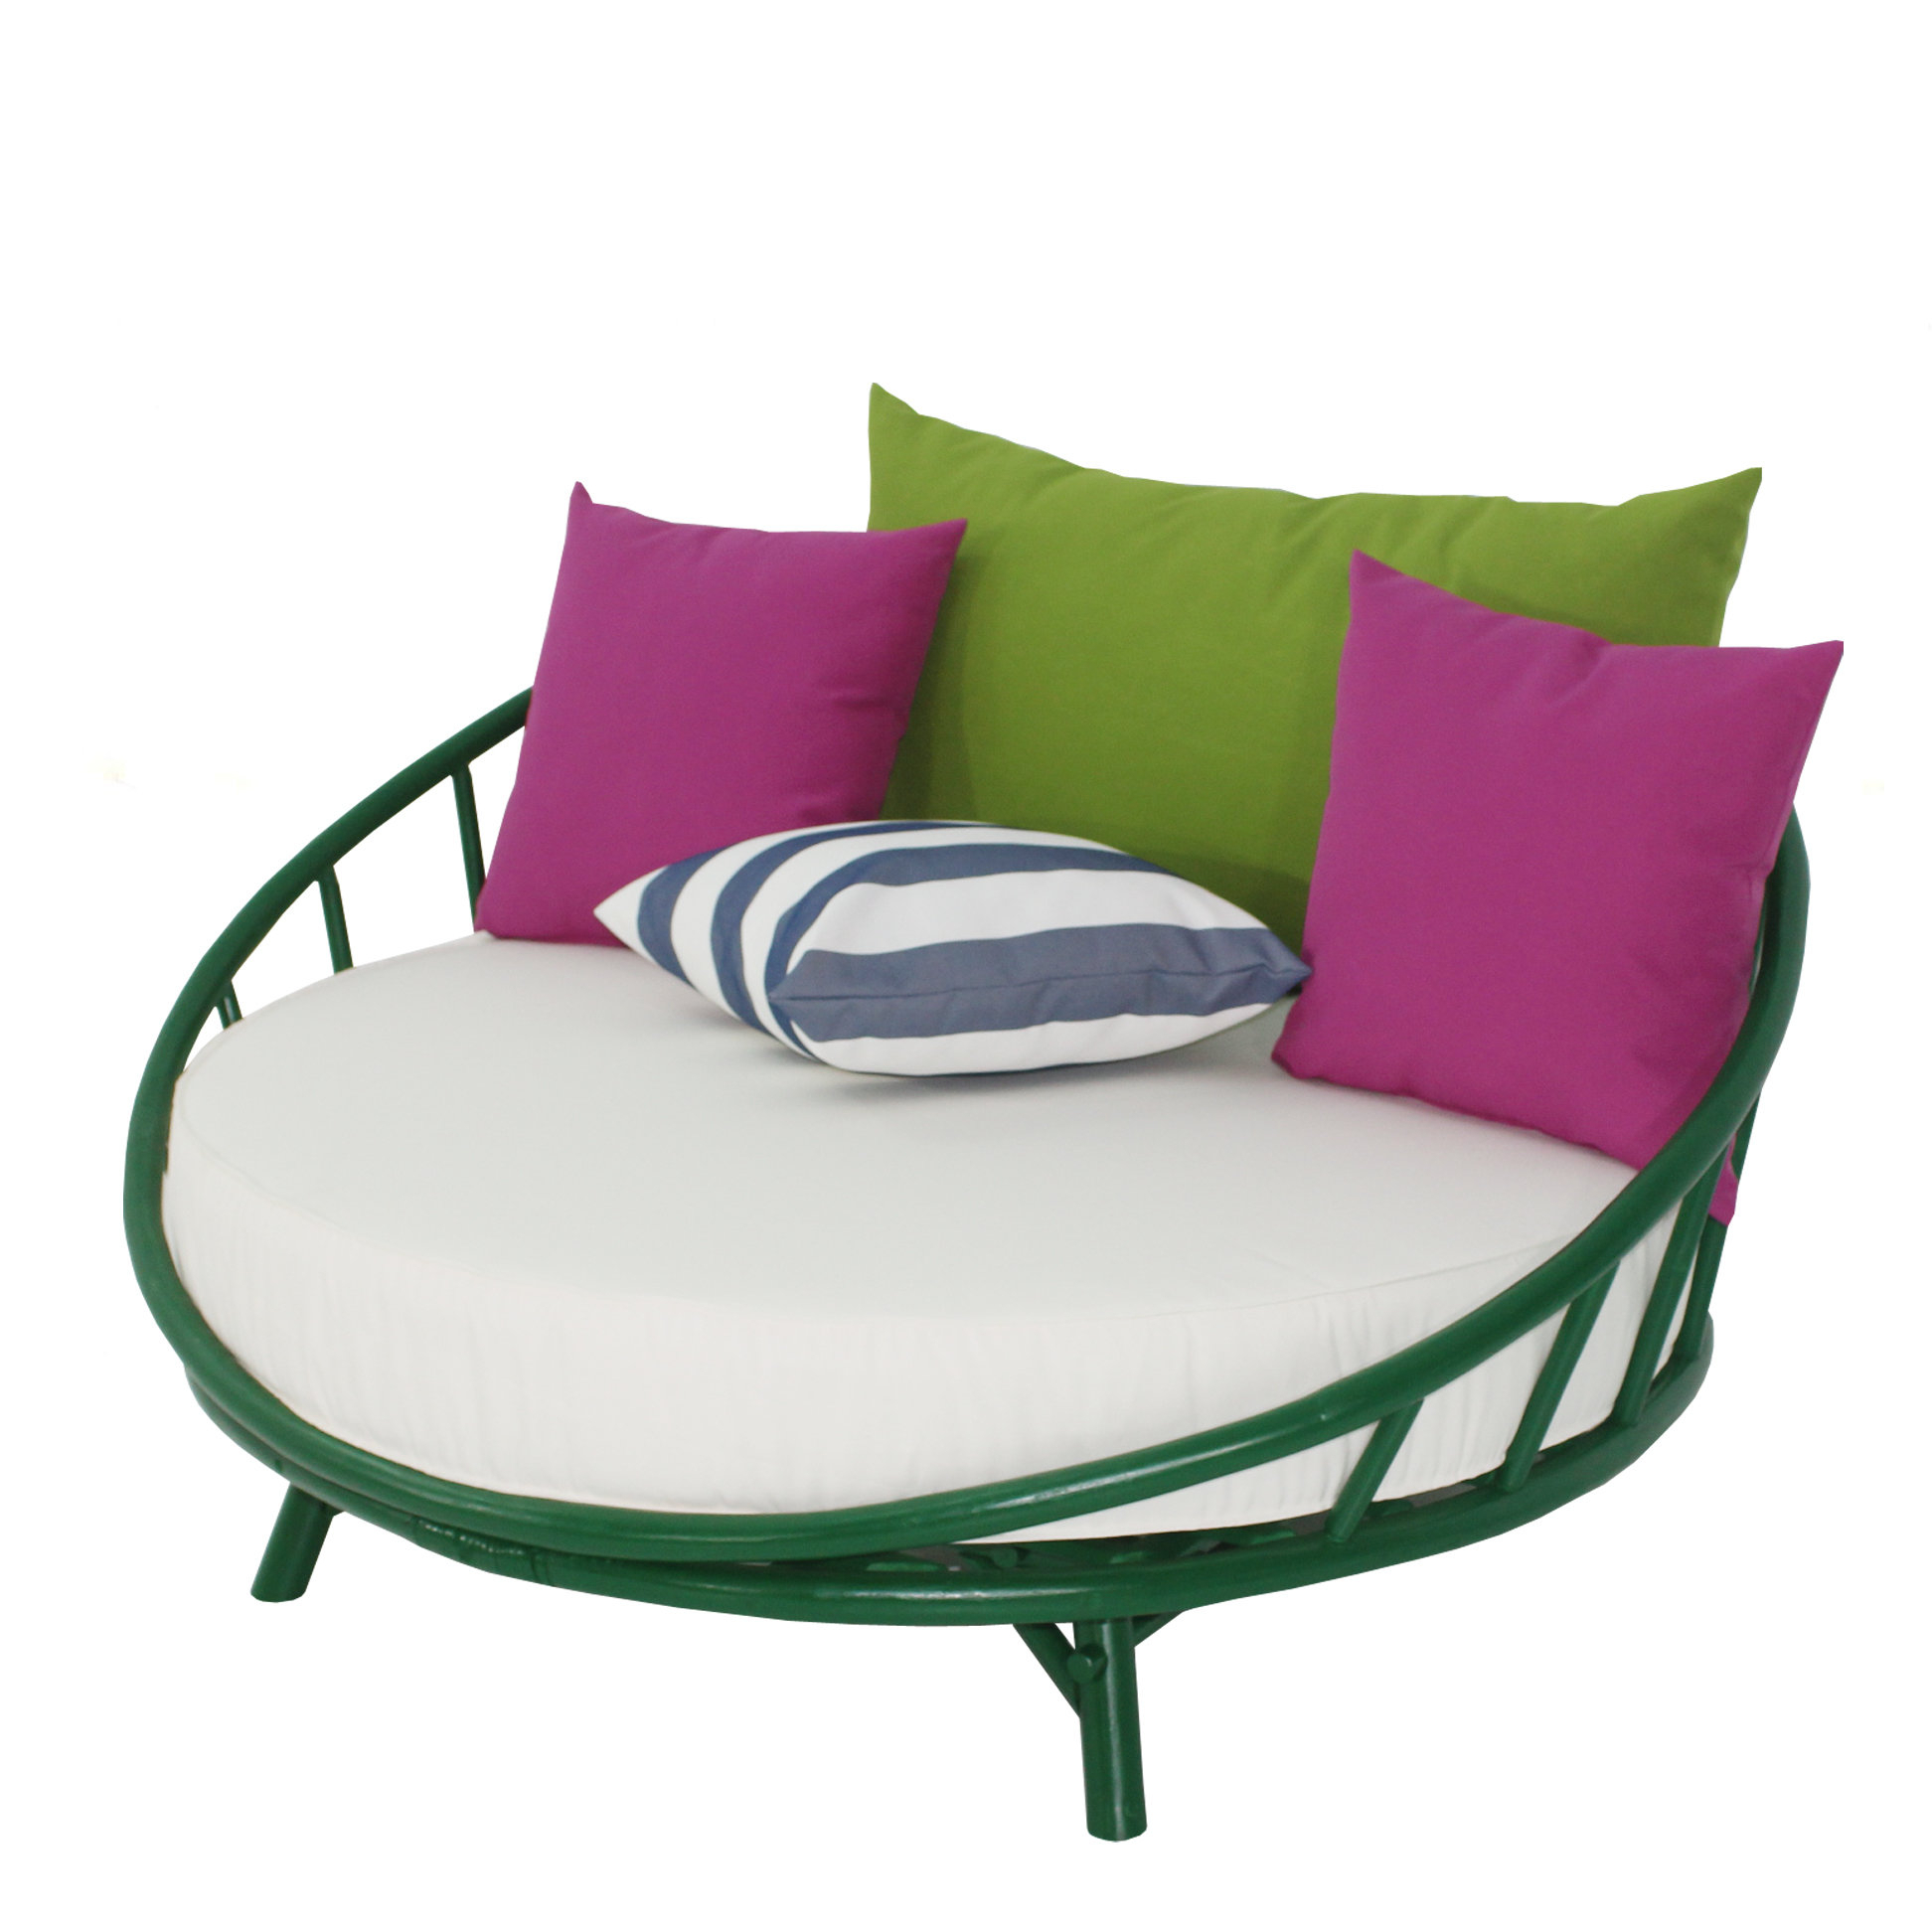 Lavina Outdoor Patio Daybeds With Cushions Regarding Well Known Olu Bamboo Large Round Patio Daybed With Cushions (View 15 of 20)